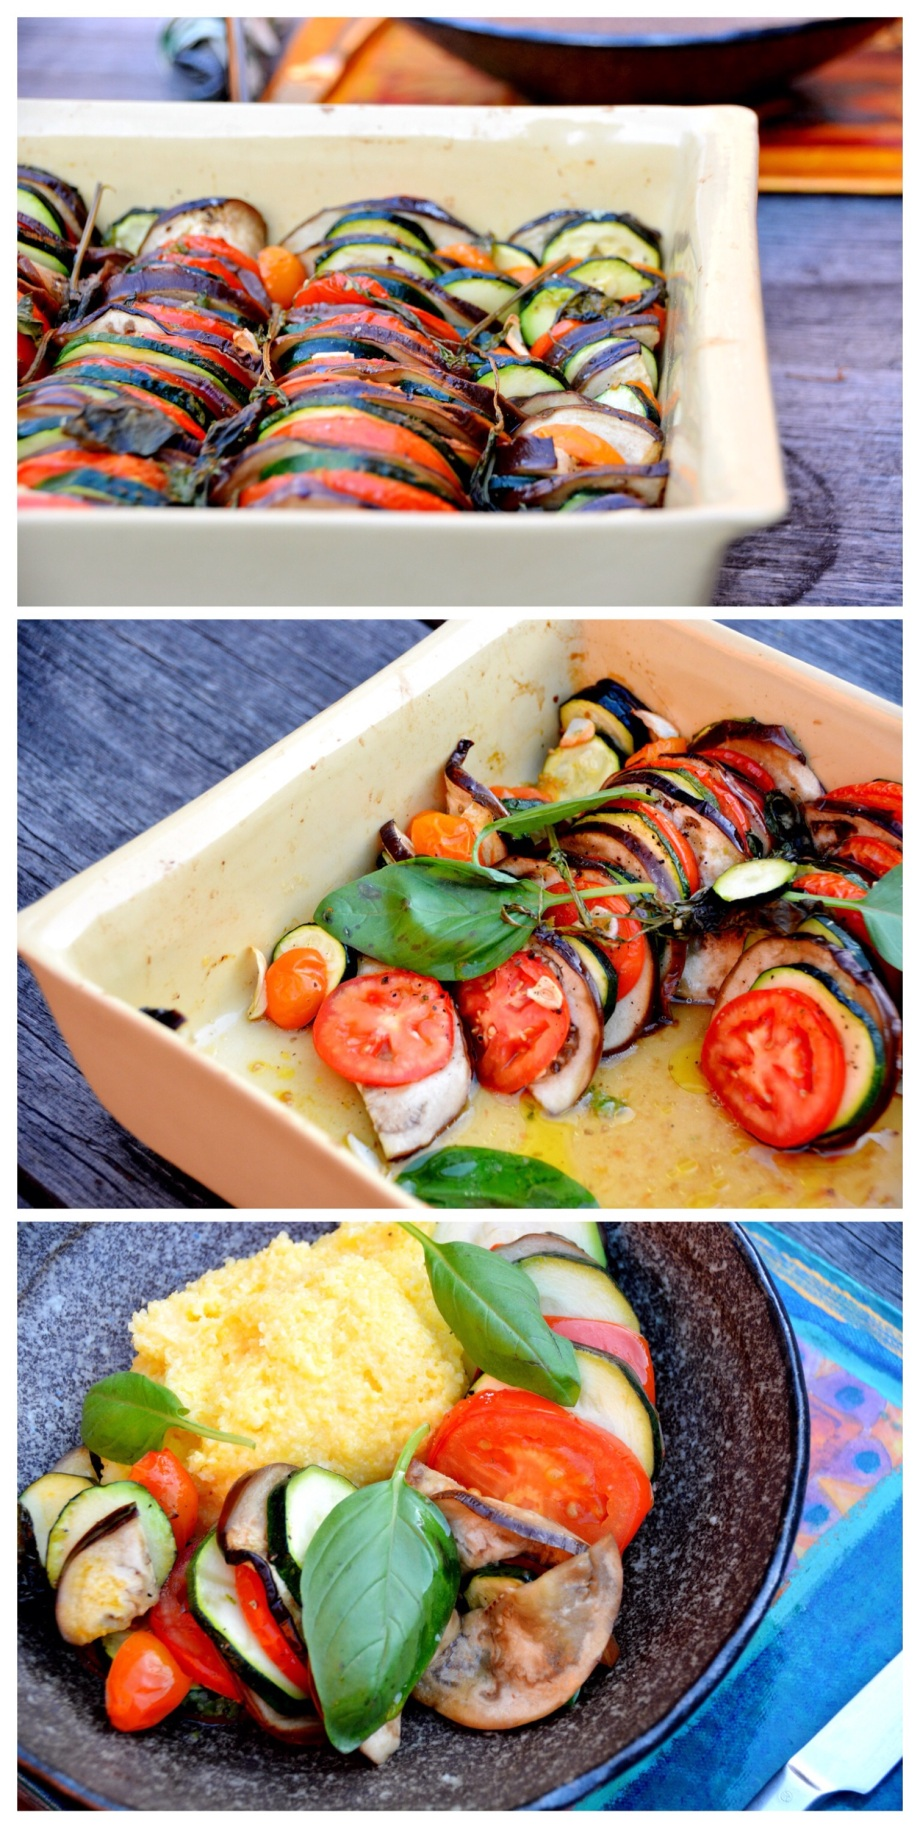 italy on my mind-best food blog-peperonata baked in the oven with basil-tian